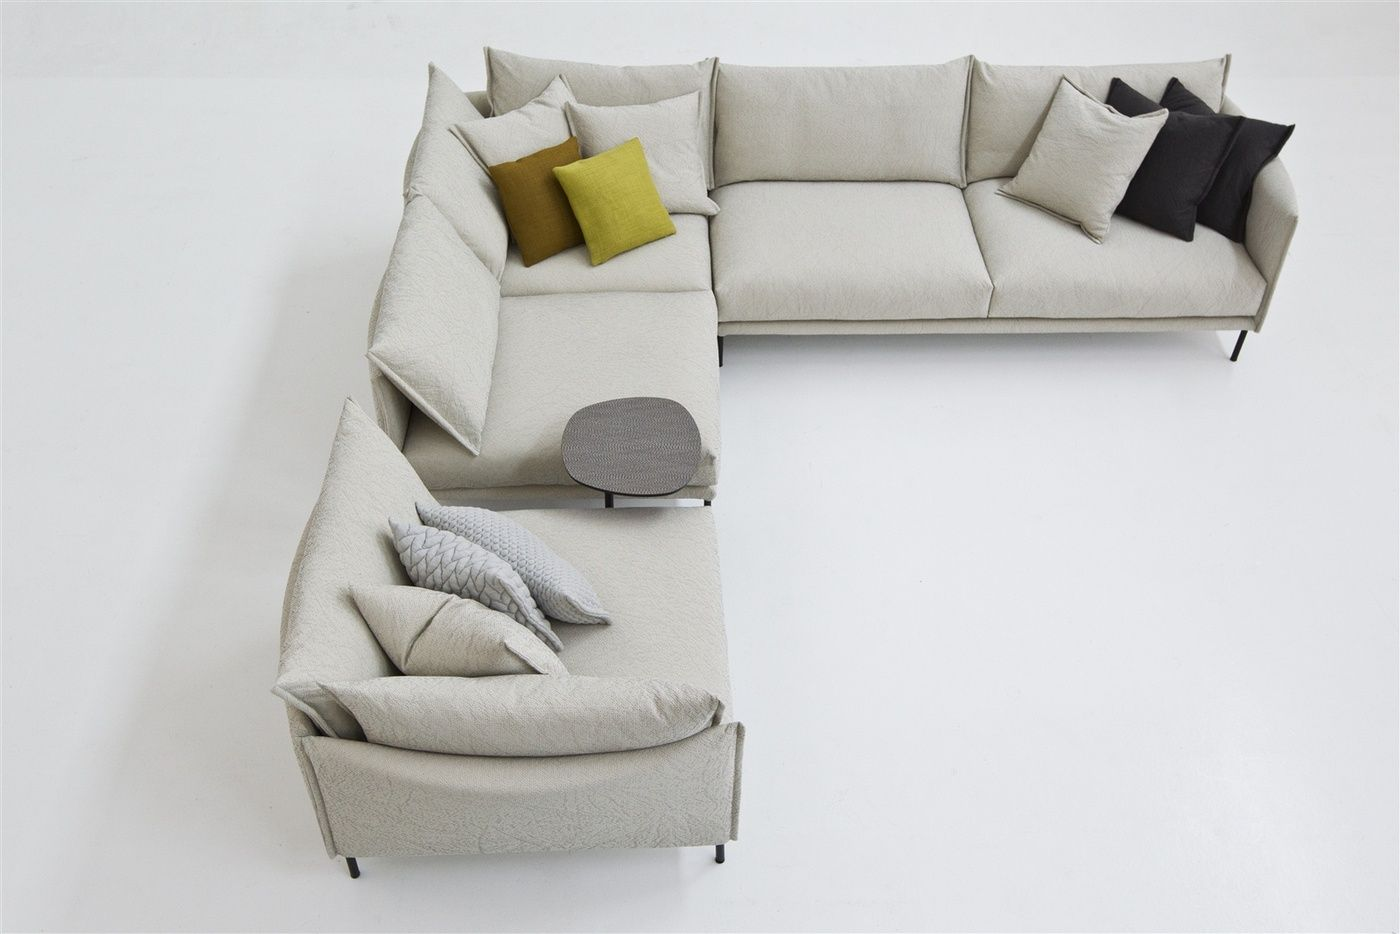 love your sofa macclesfield lounger moroso gentry patricia urquiola sofas and couches